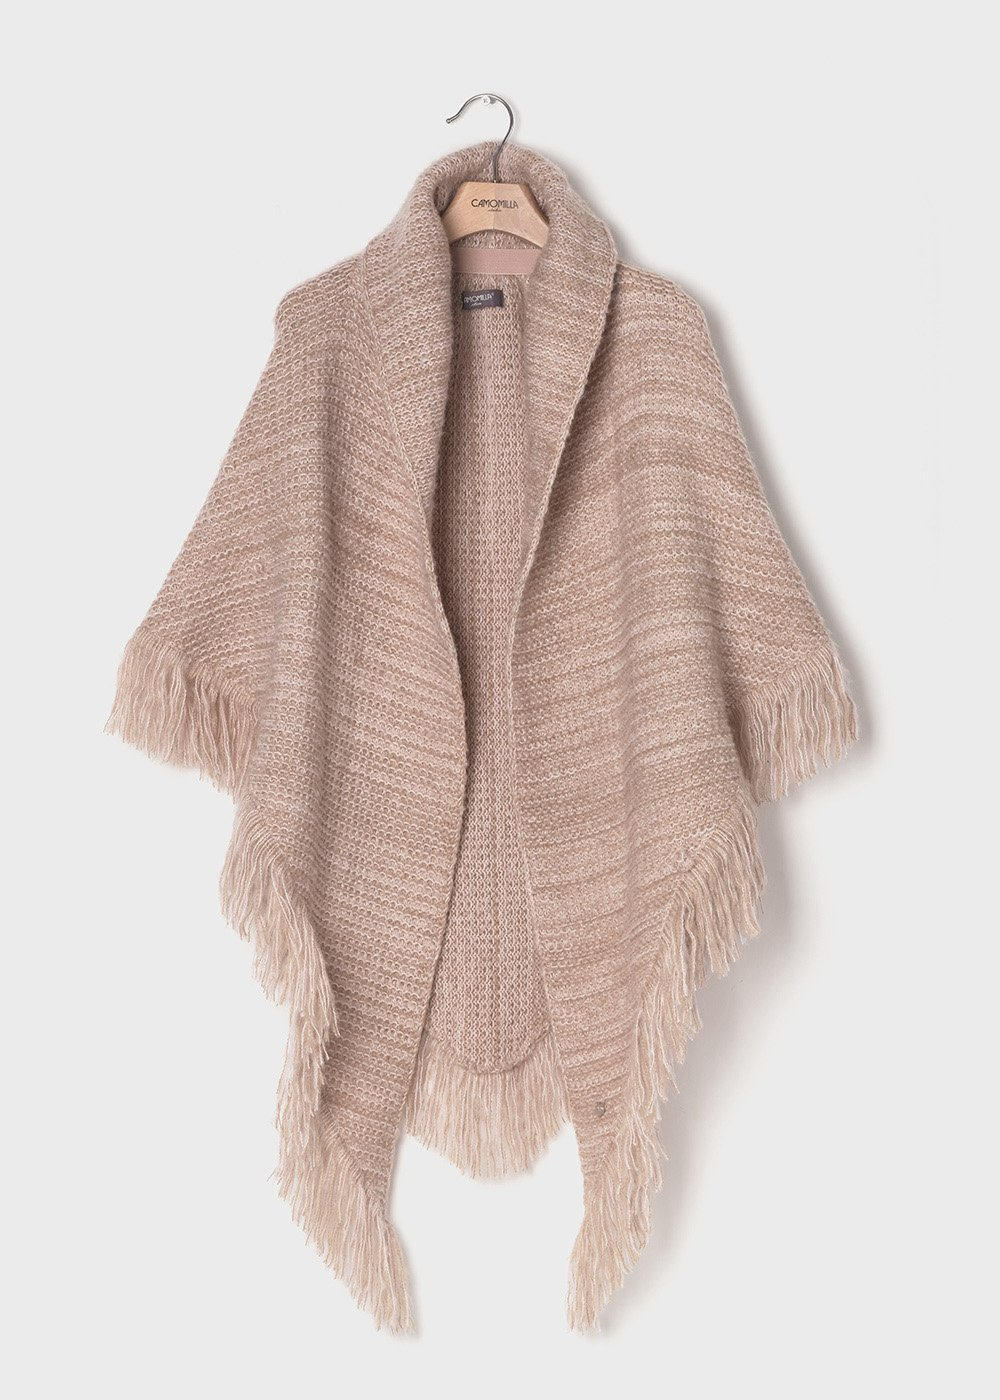 Knit cape with fringes at the bottom